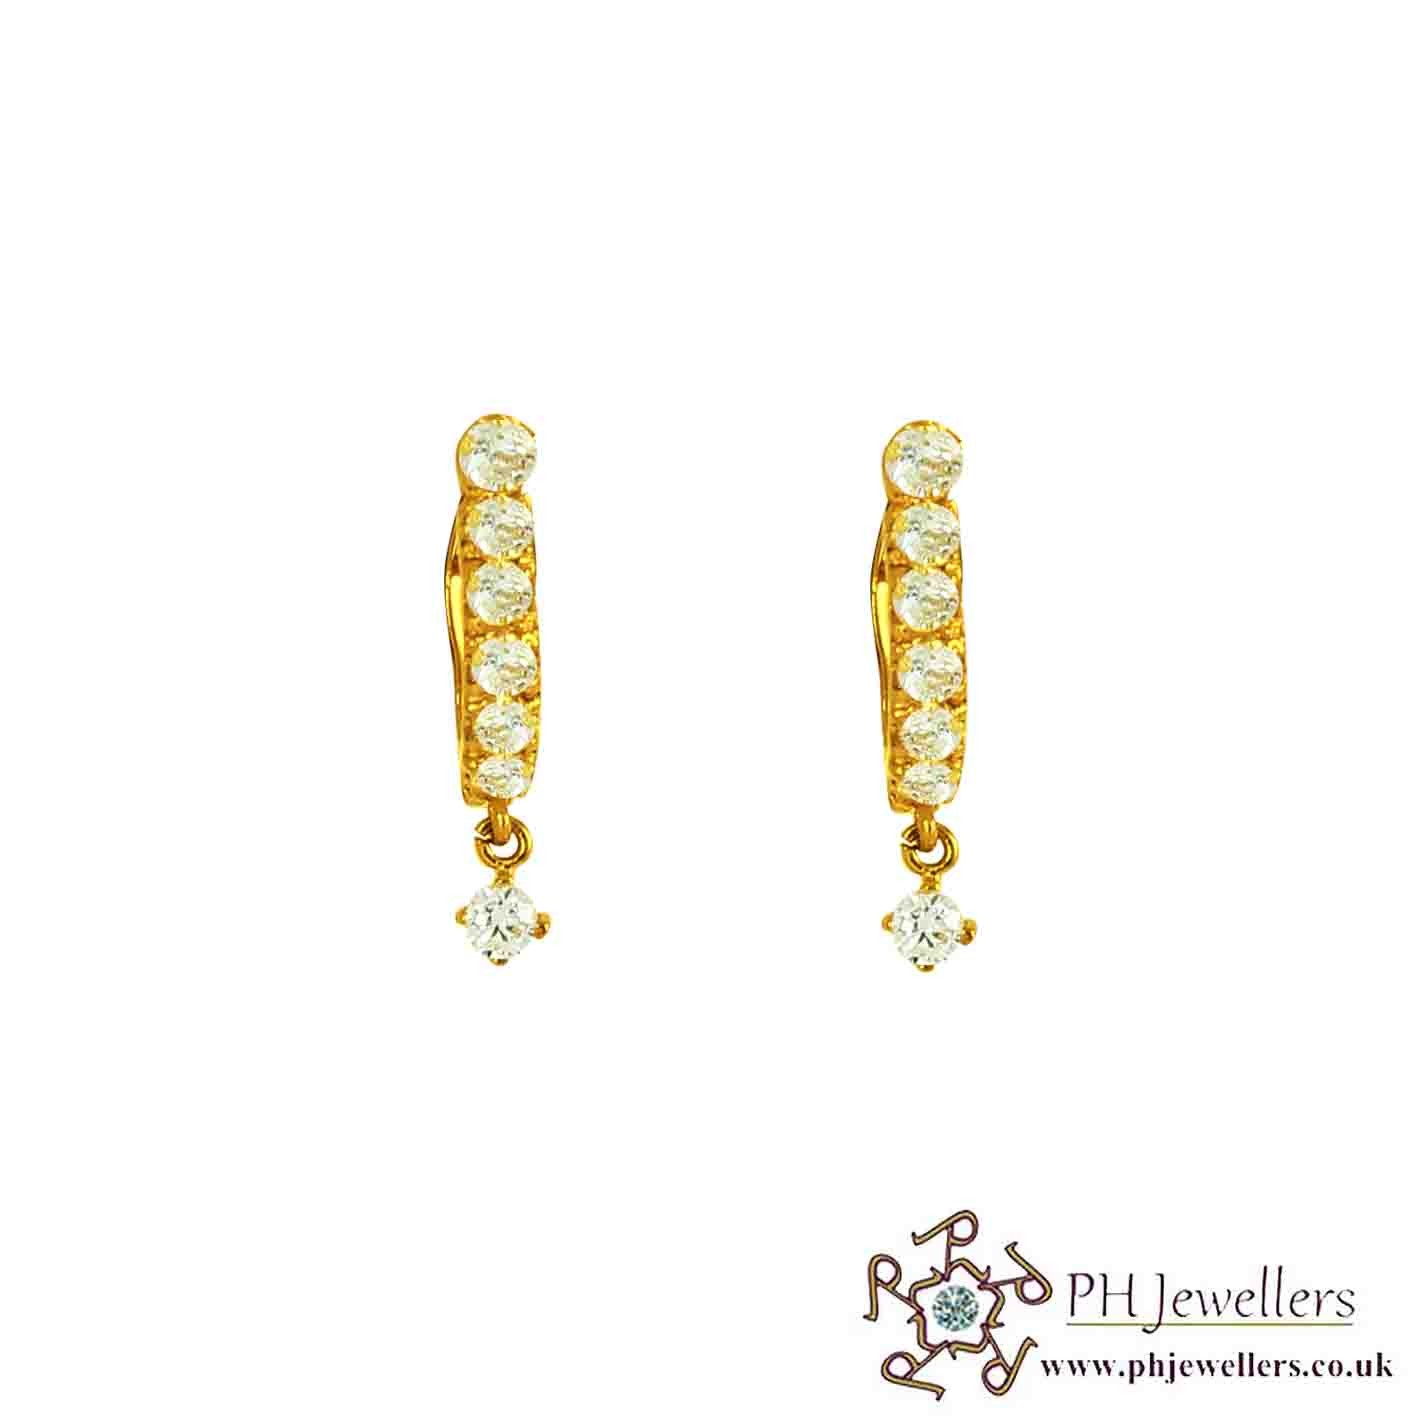 22ct 916 Hallmark Yellow Gold Clip On-Dangle Earring CZ CE29